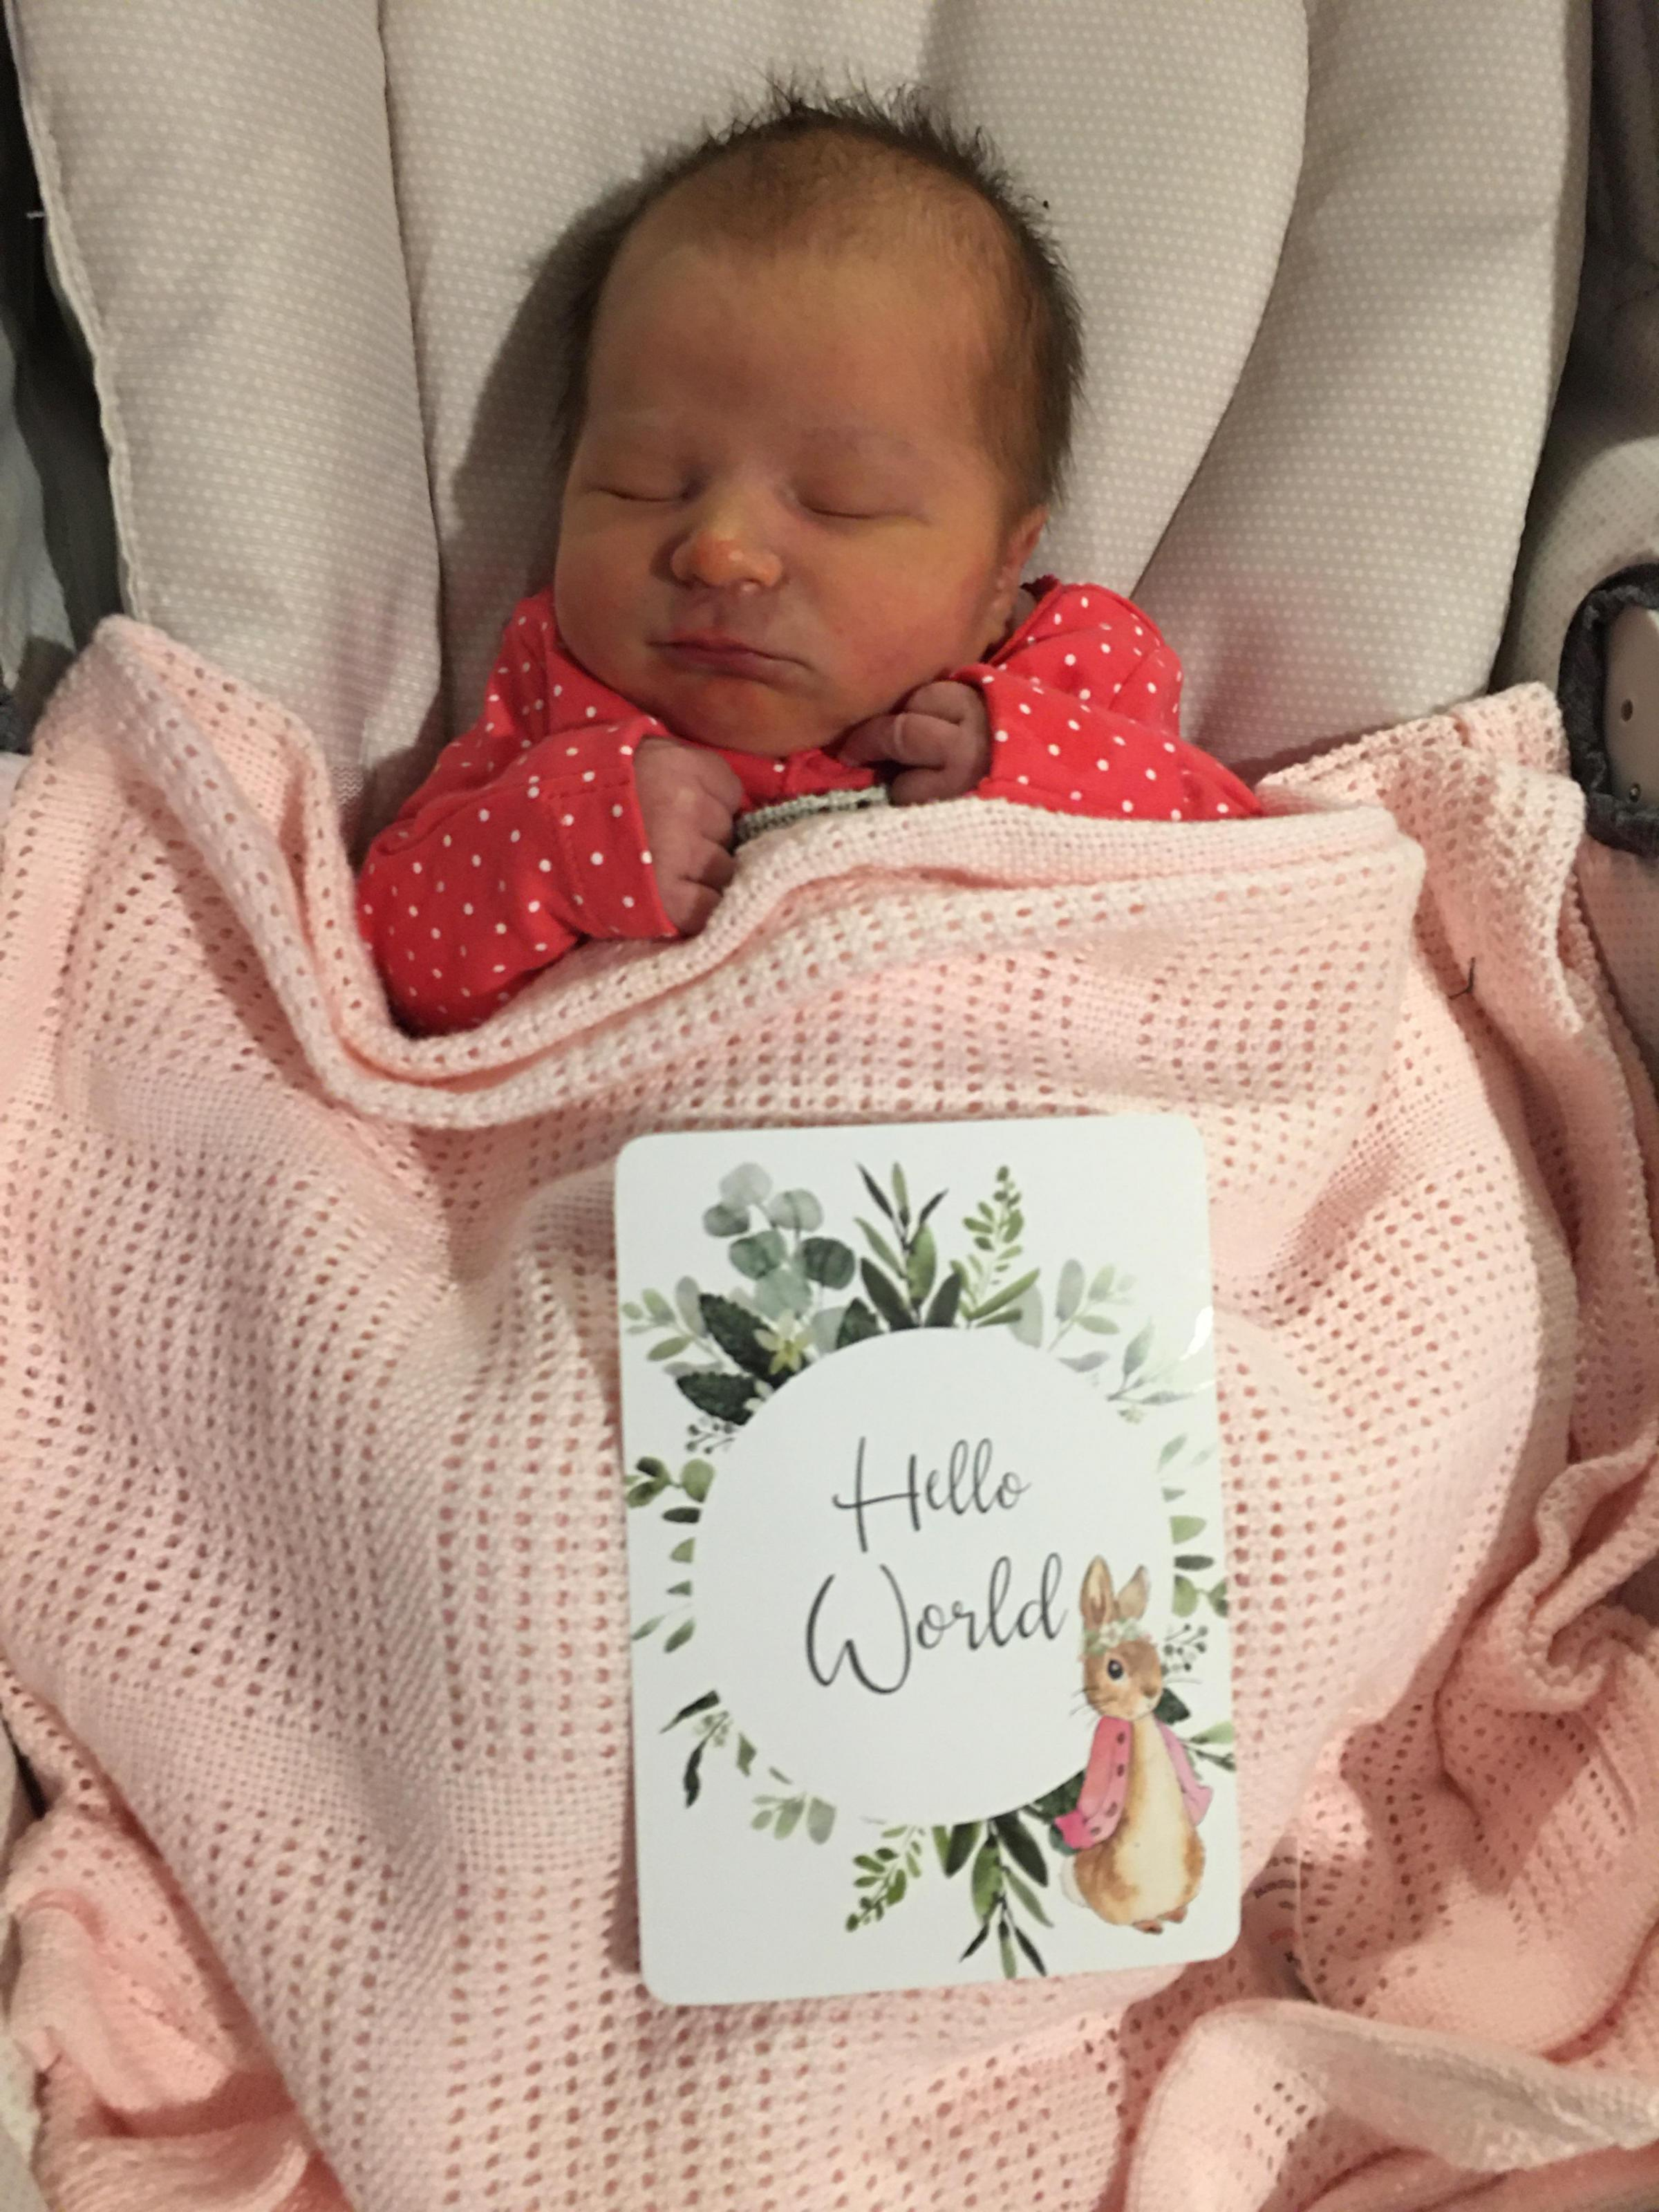 York Press: Iris Margaret-Catherine Harrison was born on November 21 weighing 7lb 5oz to Sadie Harrison and Chris Harrison of York.